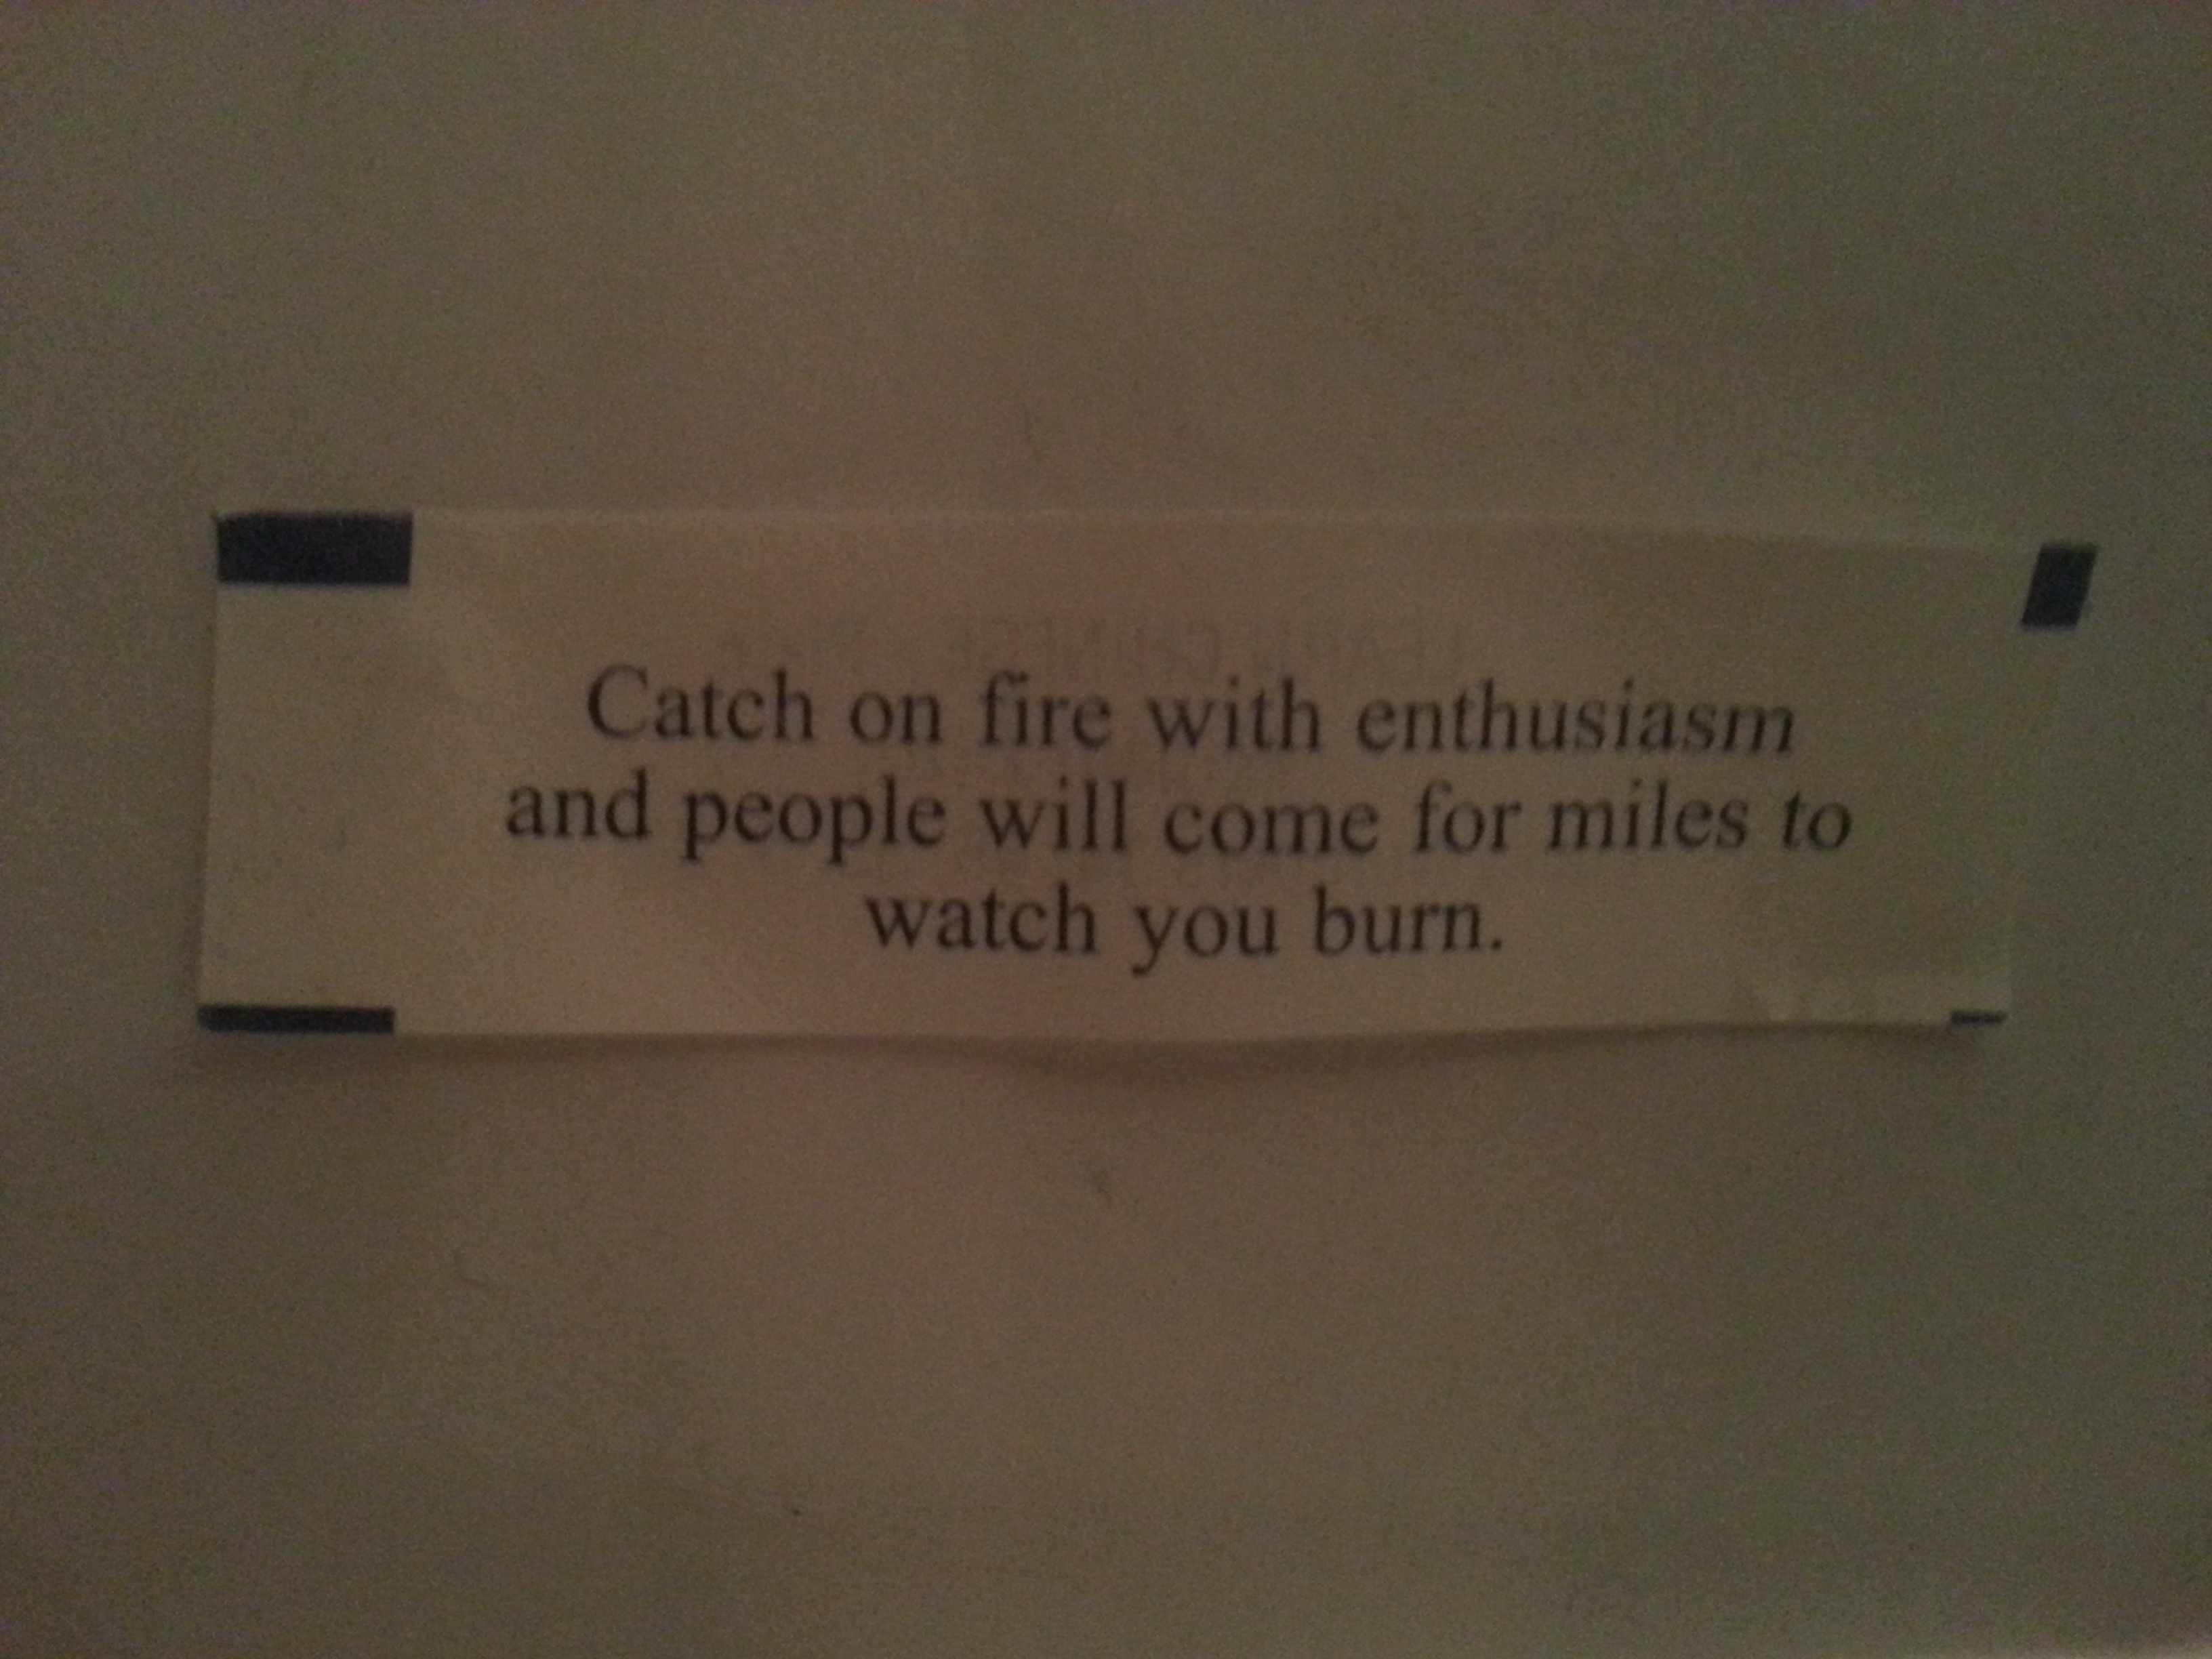 Catch on fire with enthusiasm